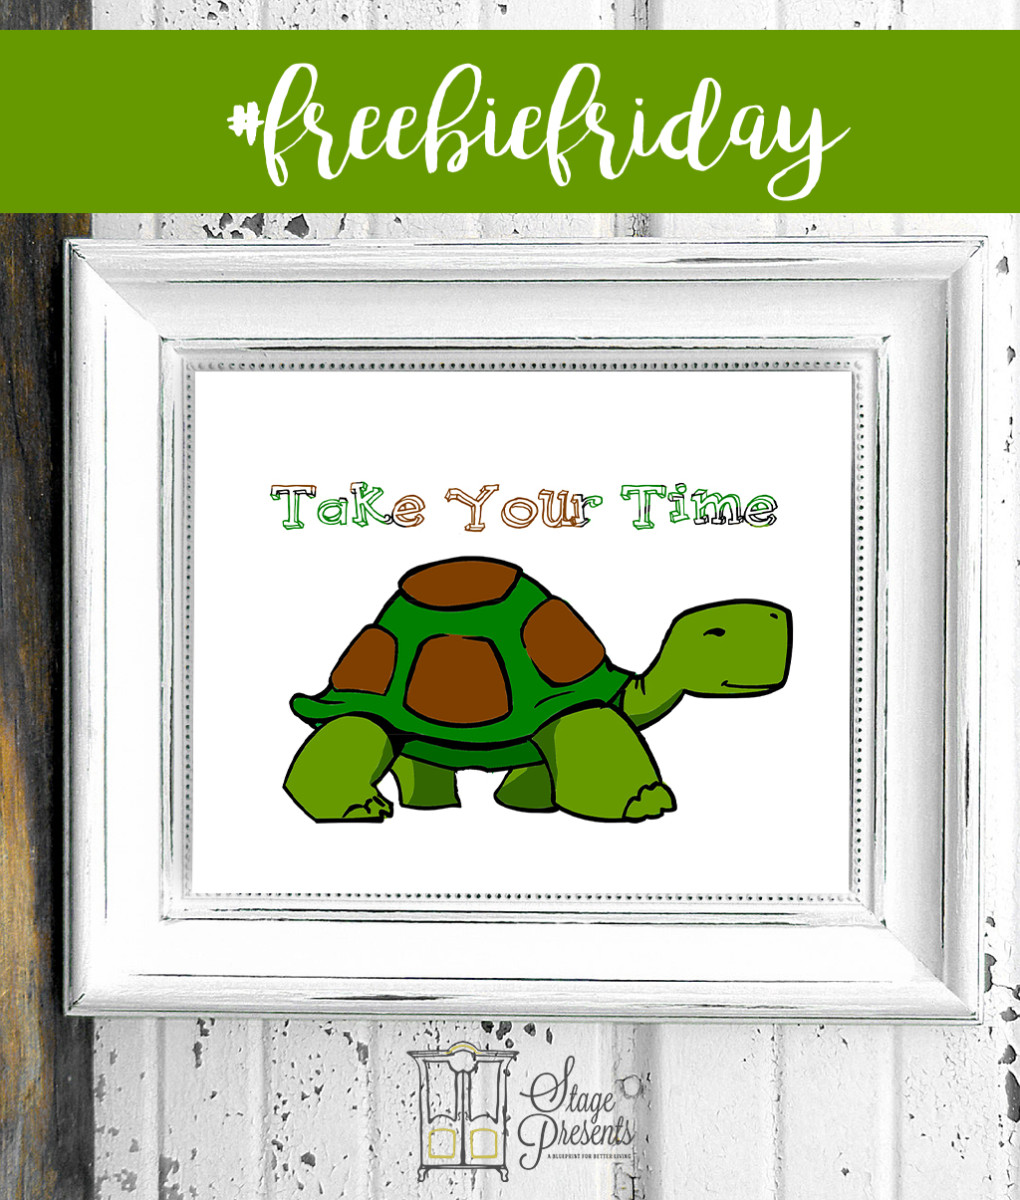 Take Your Time Turtle Print - Freebie Friday - stage-presents.com